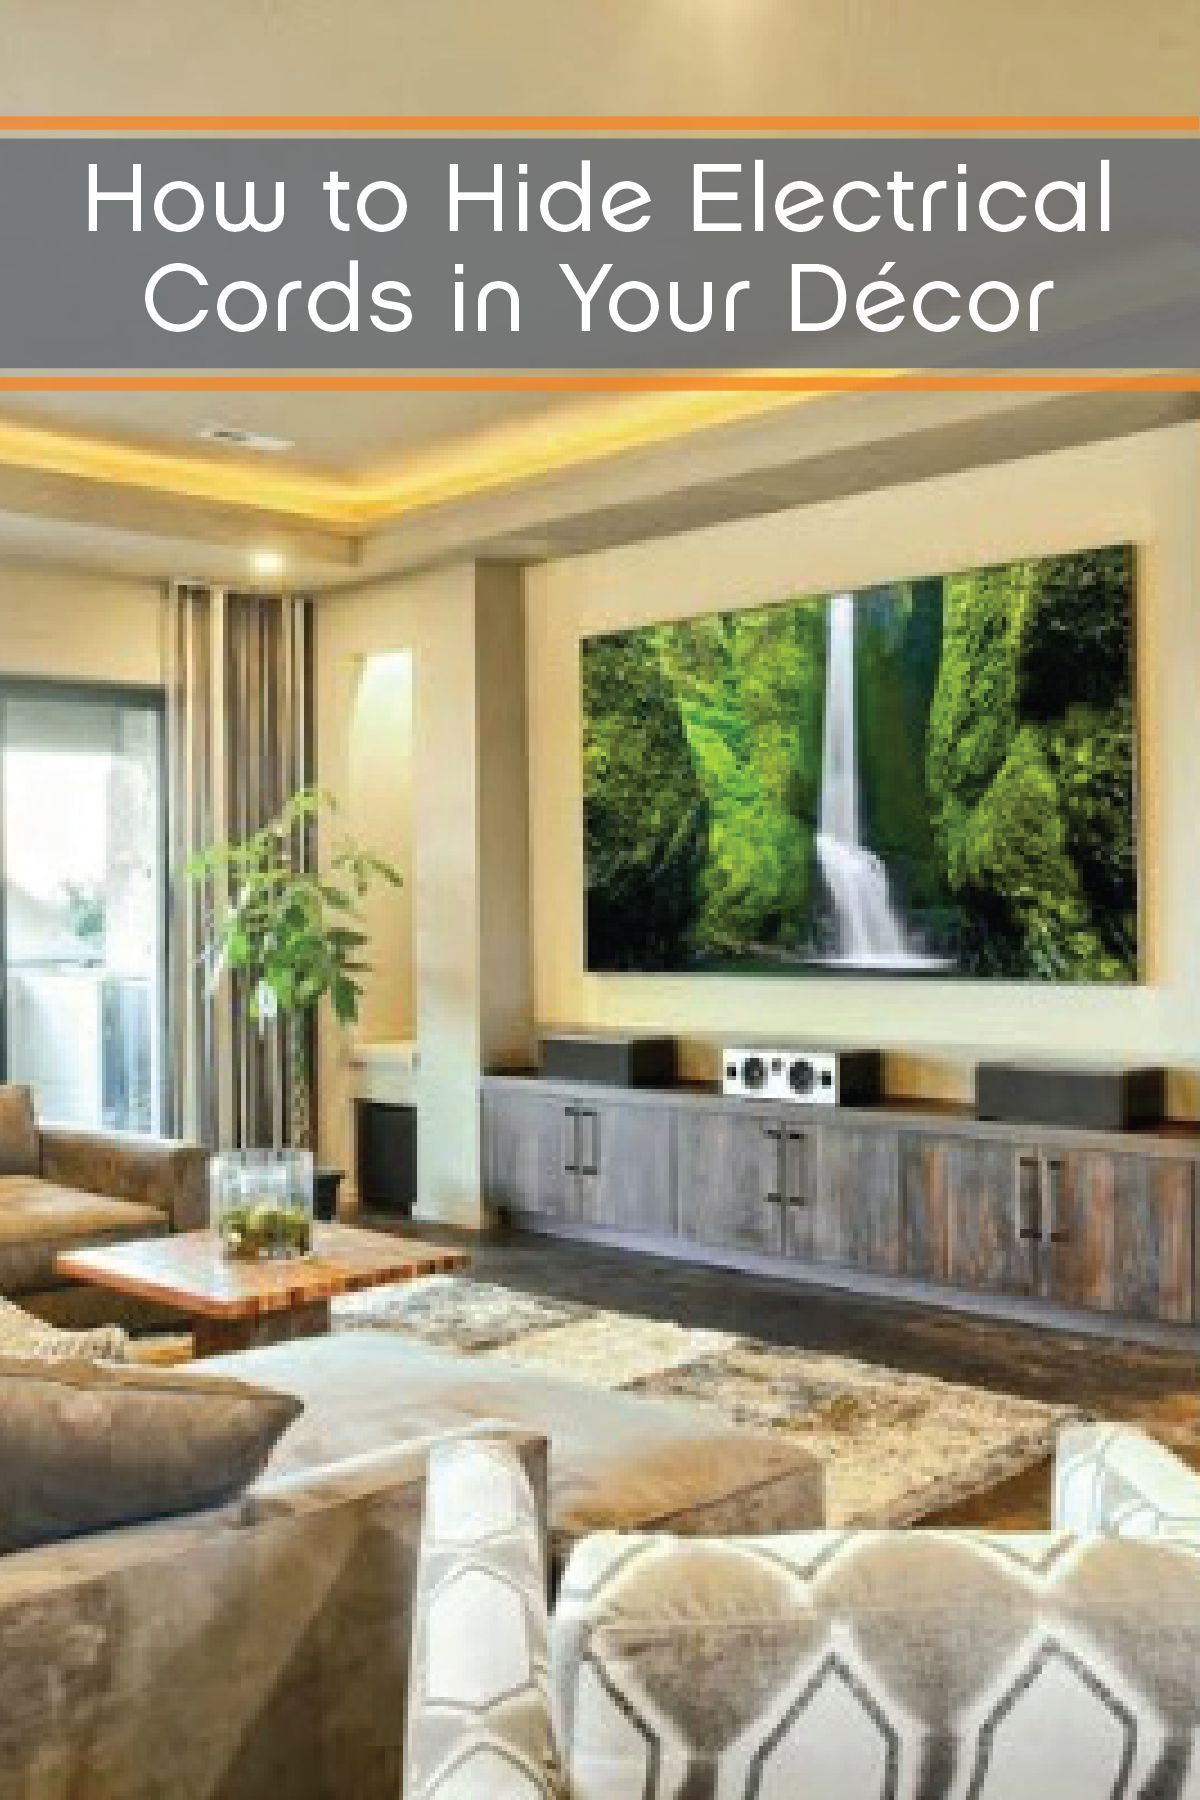 creative ways to hide electrical cords and devises in your home rh pinterest com